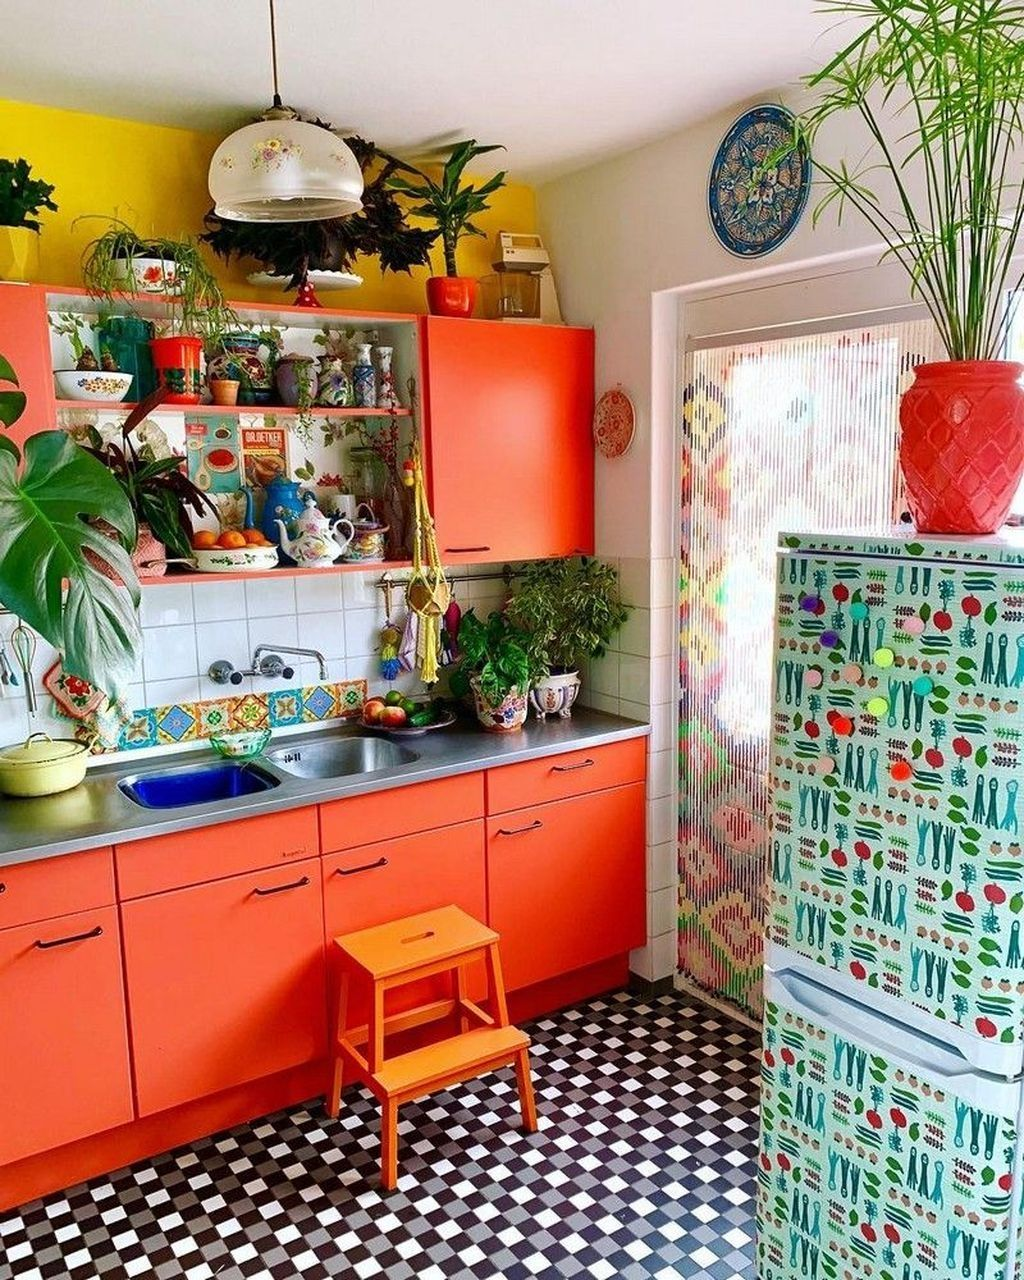 37 Best Colorful Kitchen Design Ideas images